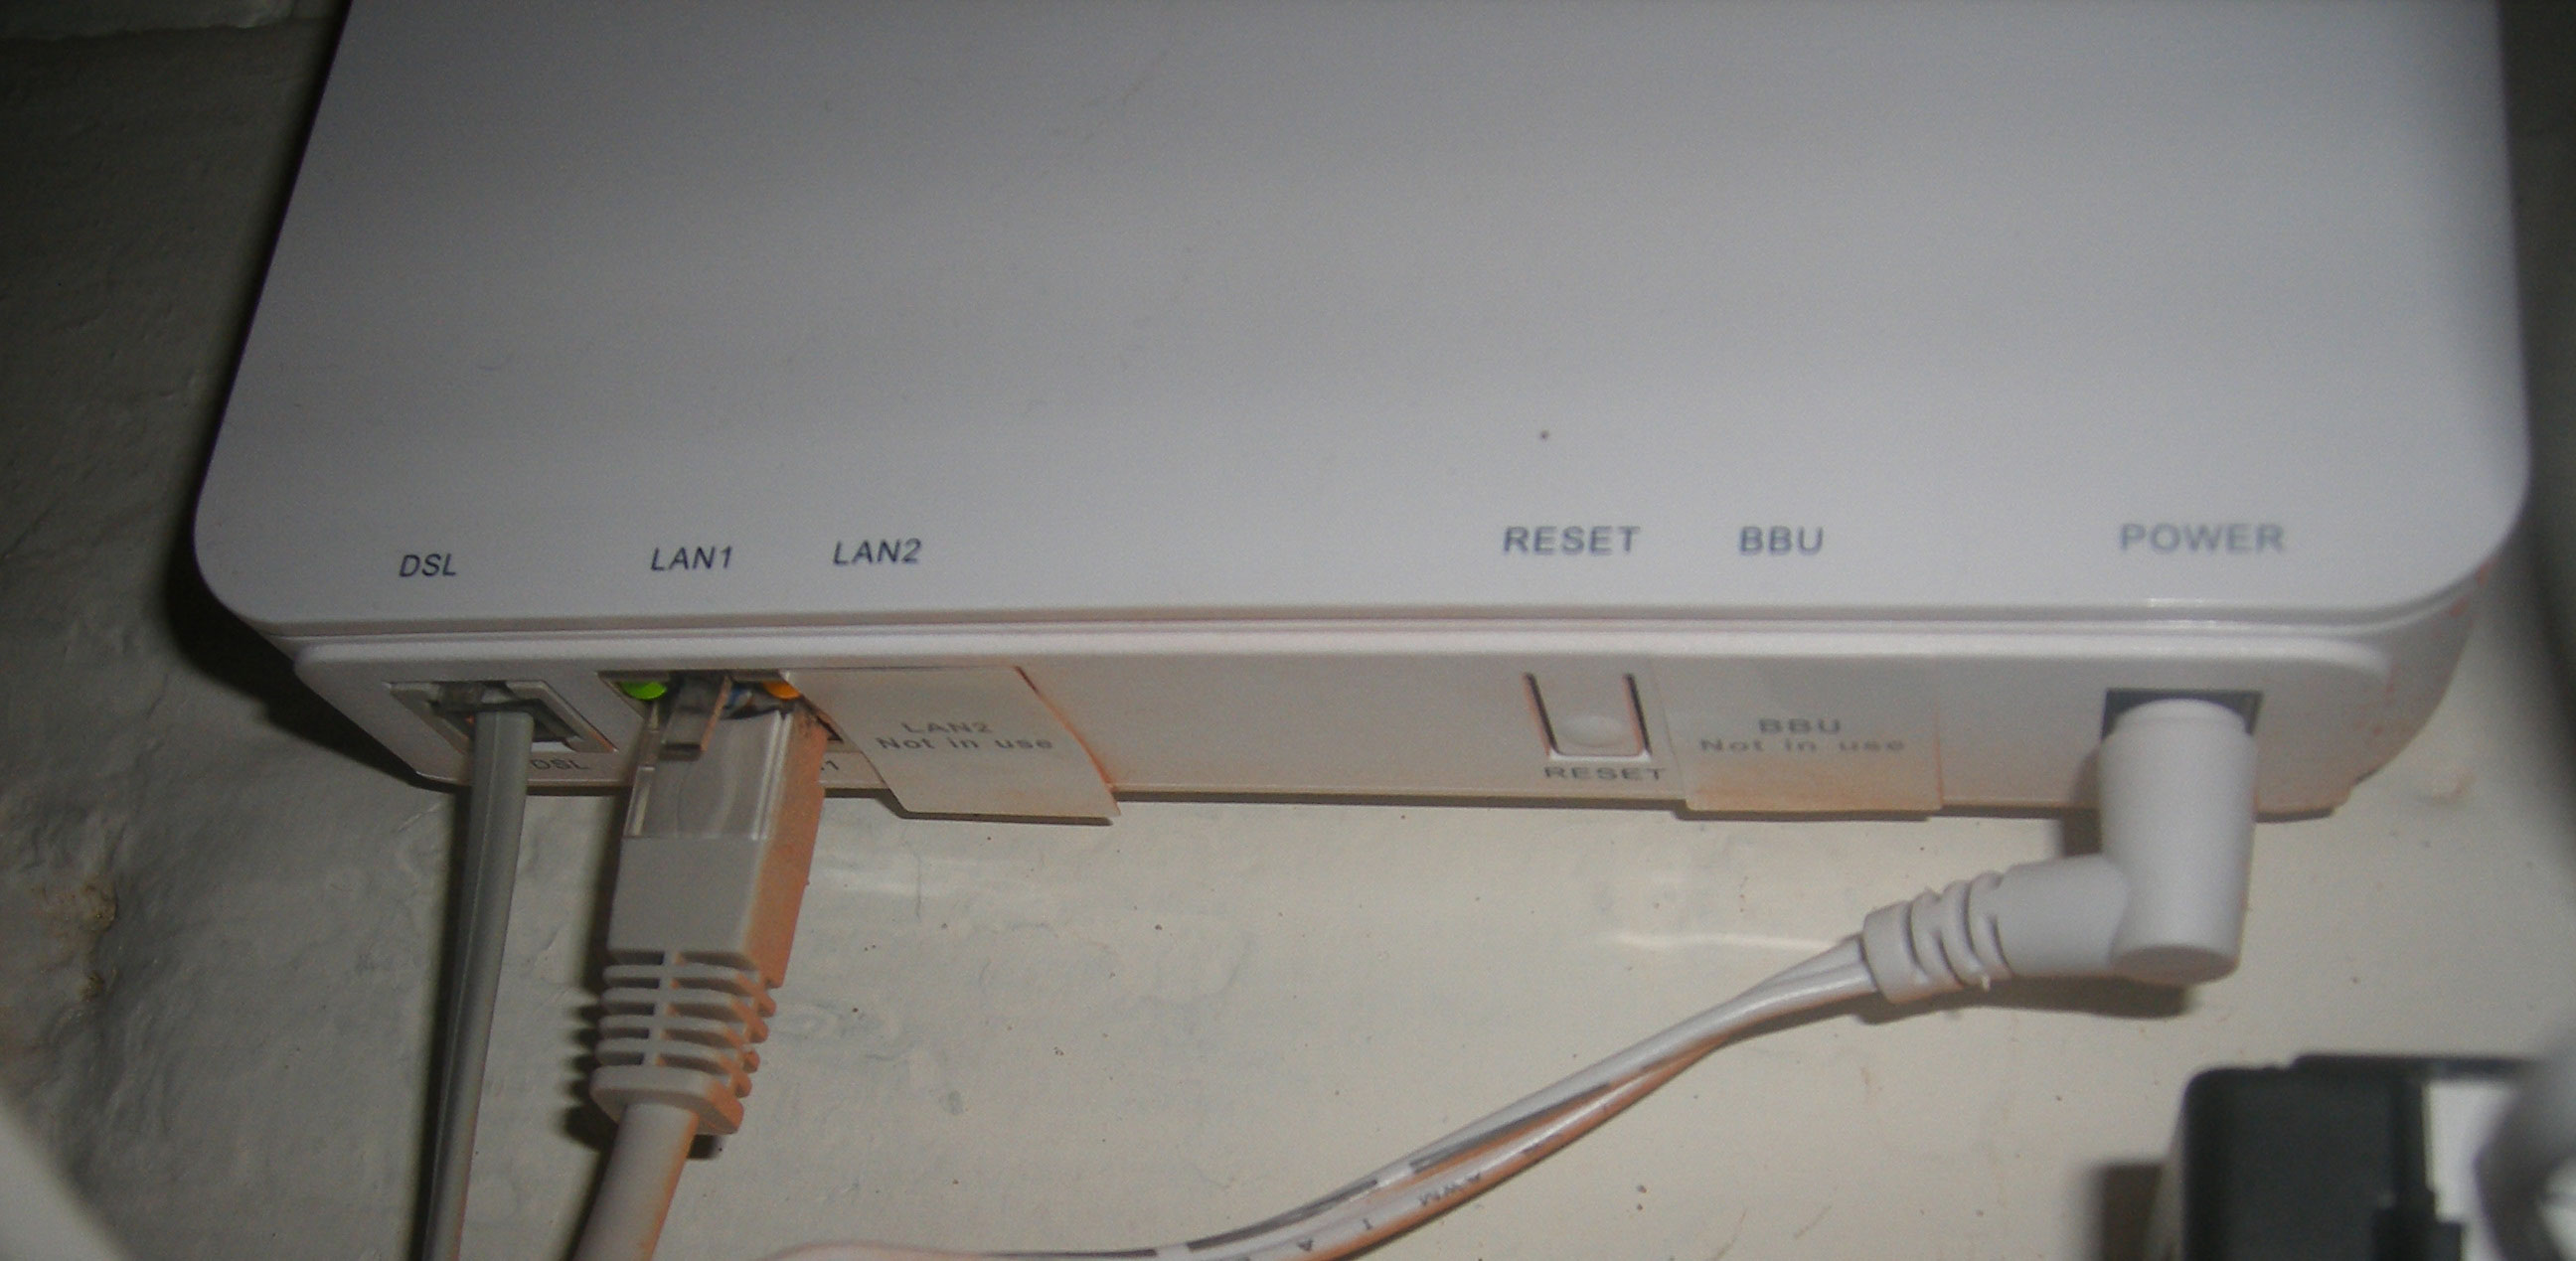 Bts Uk Fttc Vdsl2 Infinity Explained Wiring Wall Socket Ports On Bt Modem